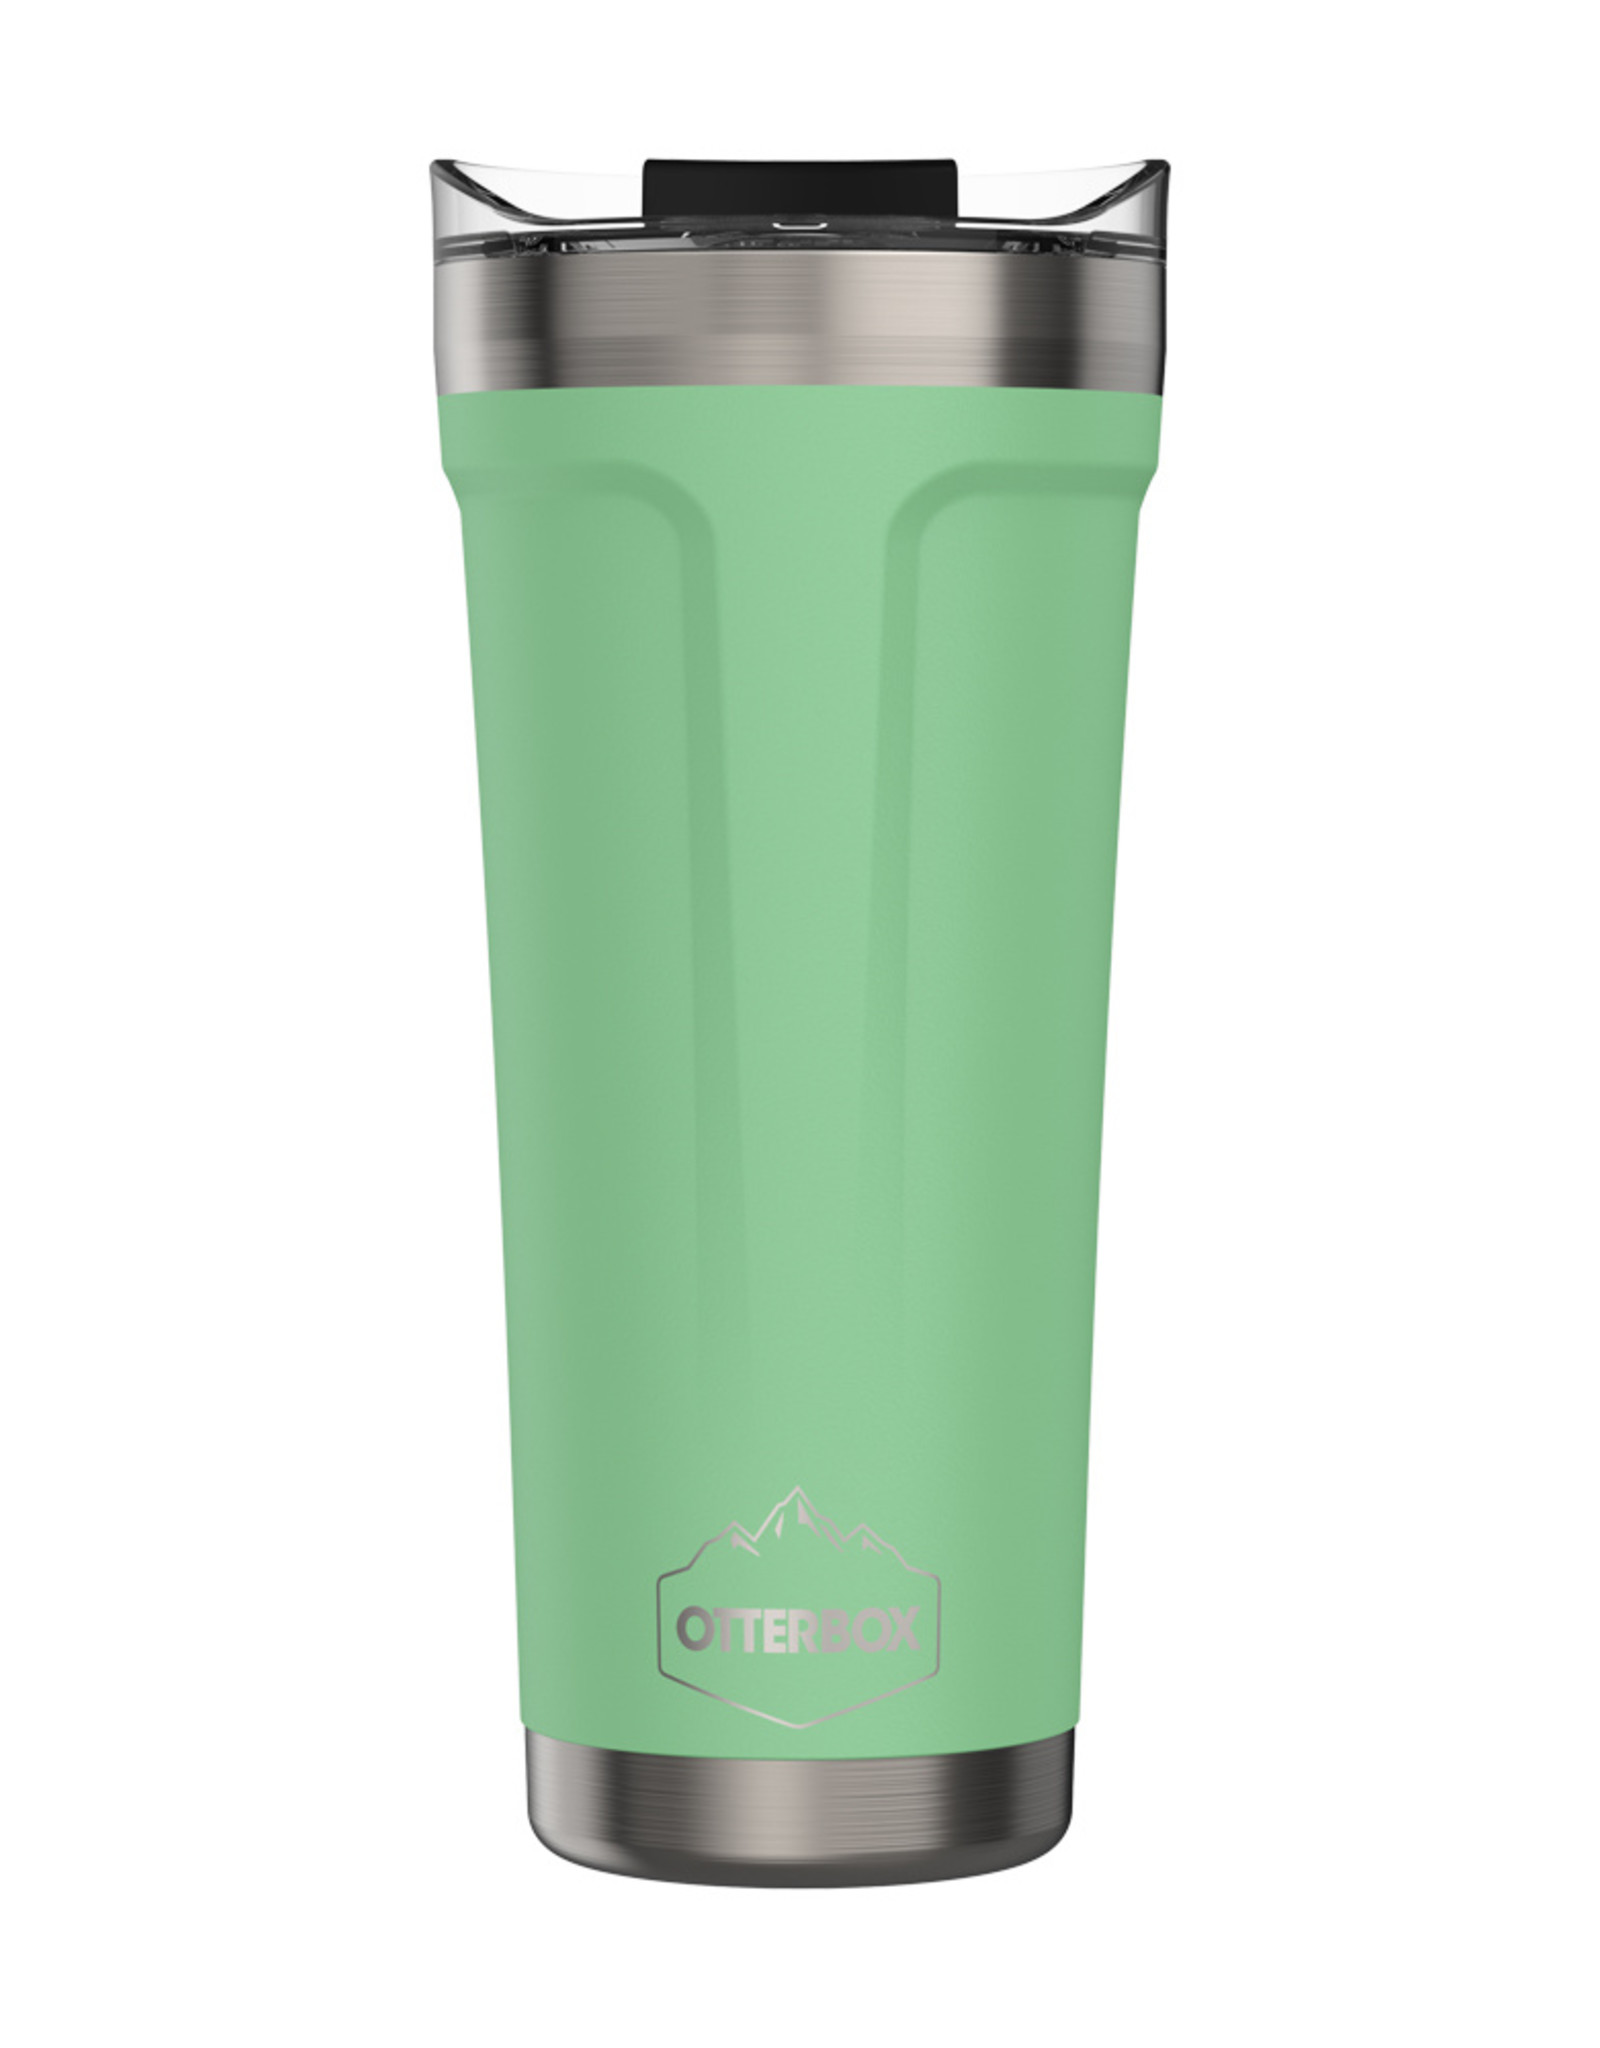 Otterbox Otterbox - Elevation Tumbler with Closed Lid 20 OZ Lavender Chill 102-0103